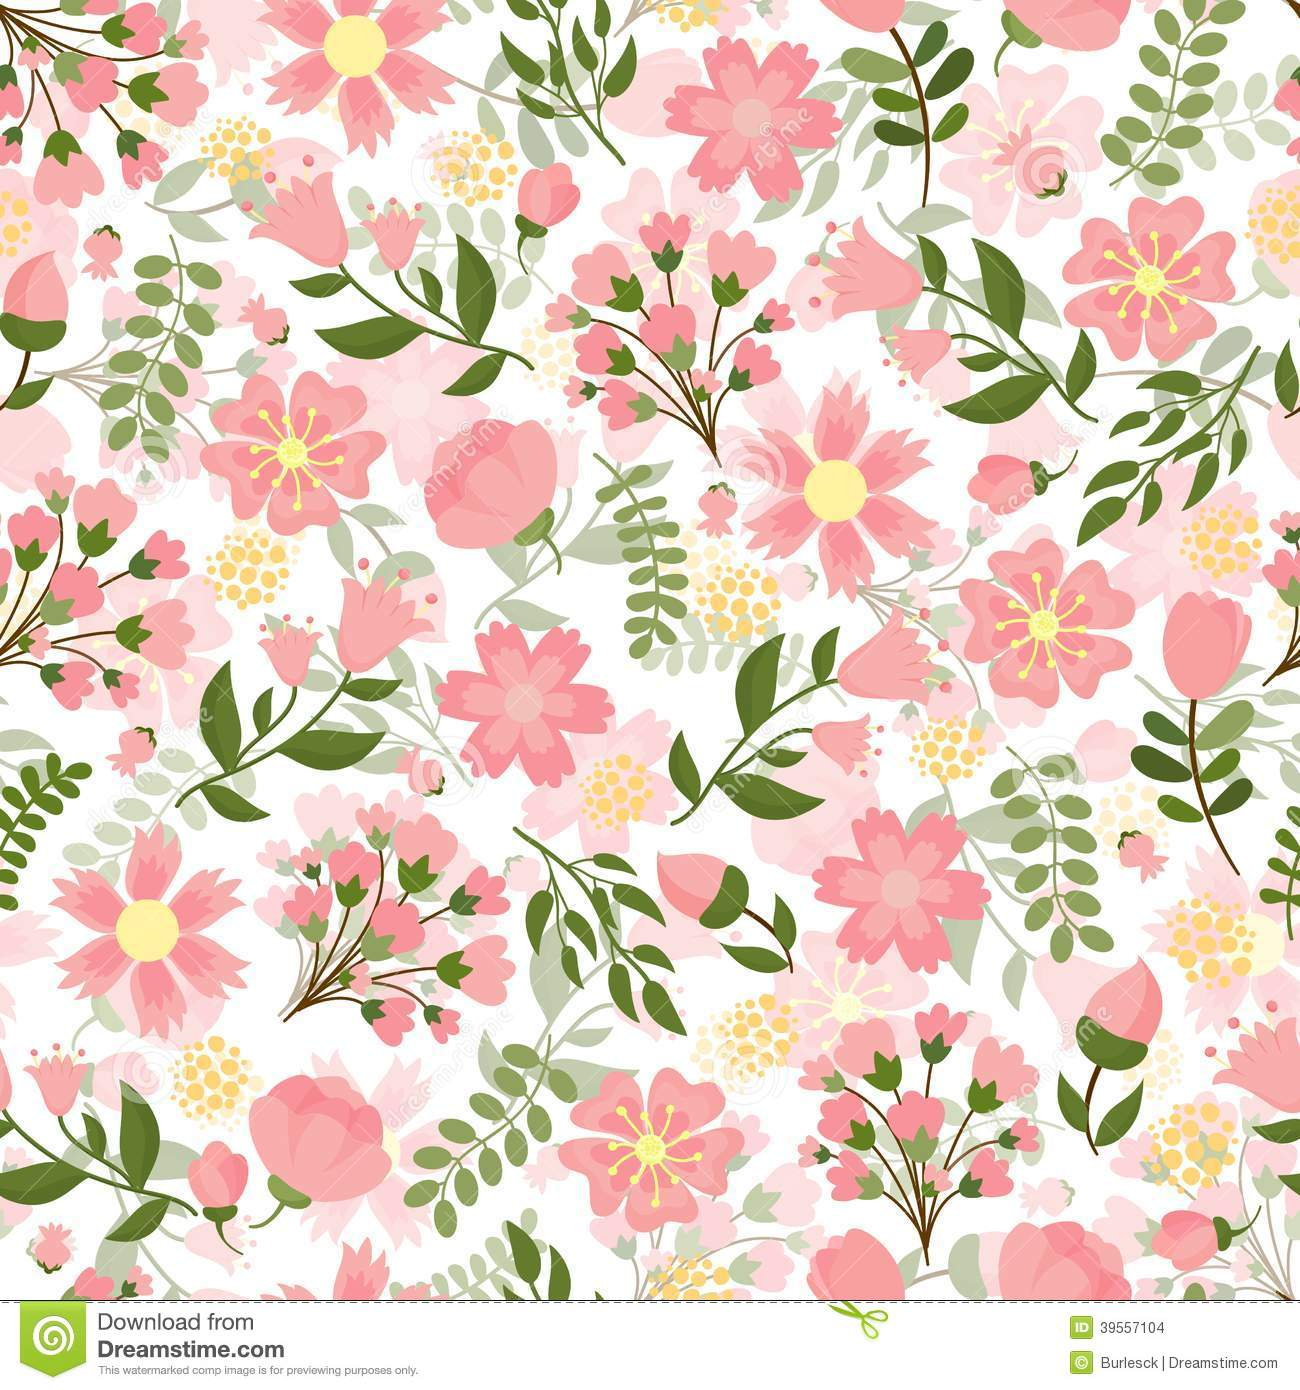 Pretty Fall Iphone Wallpapers Seamless Spring Floral Background Stock Vector